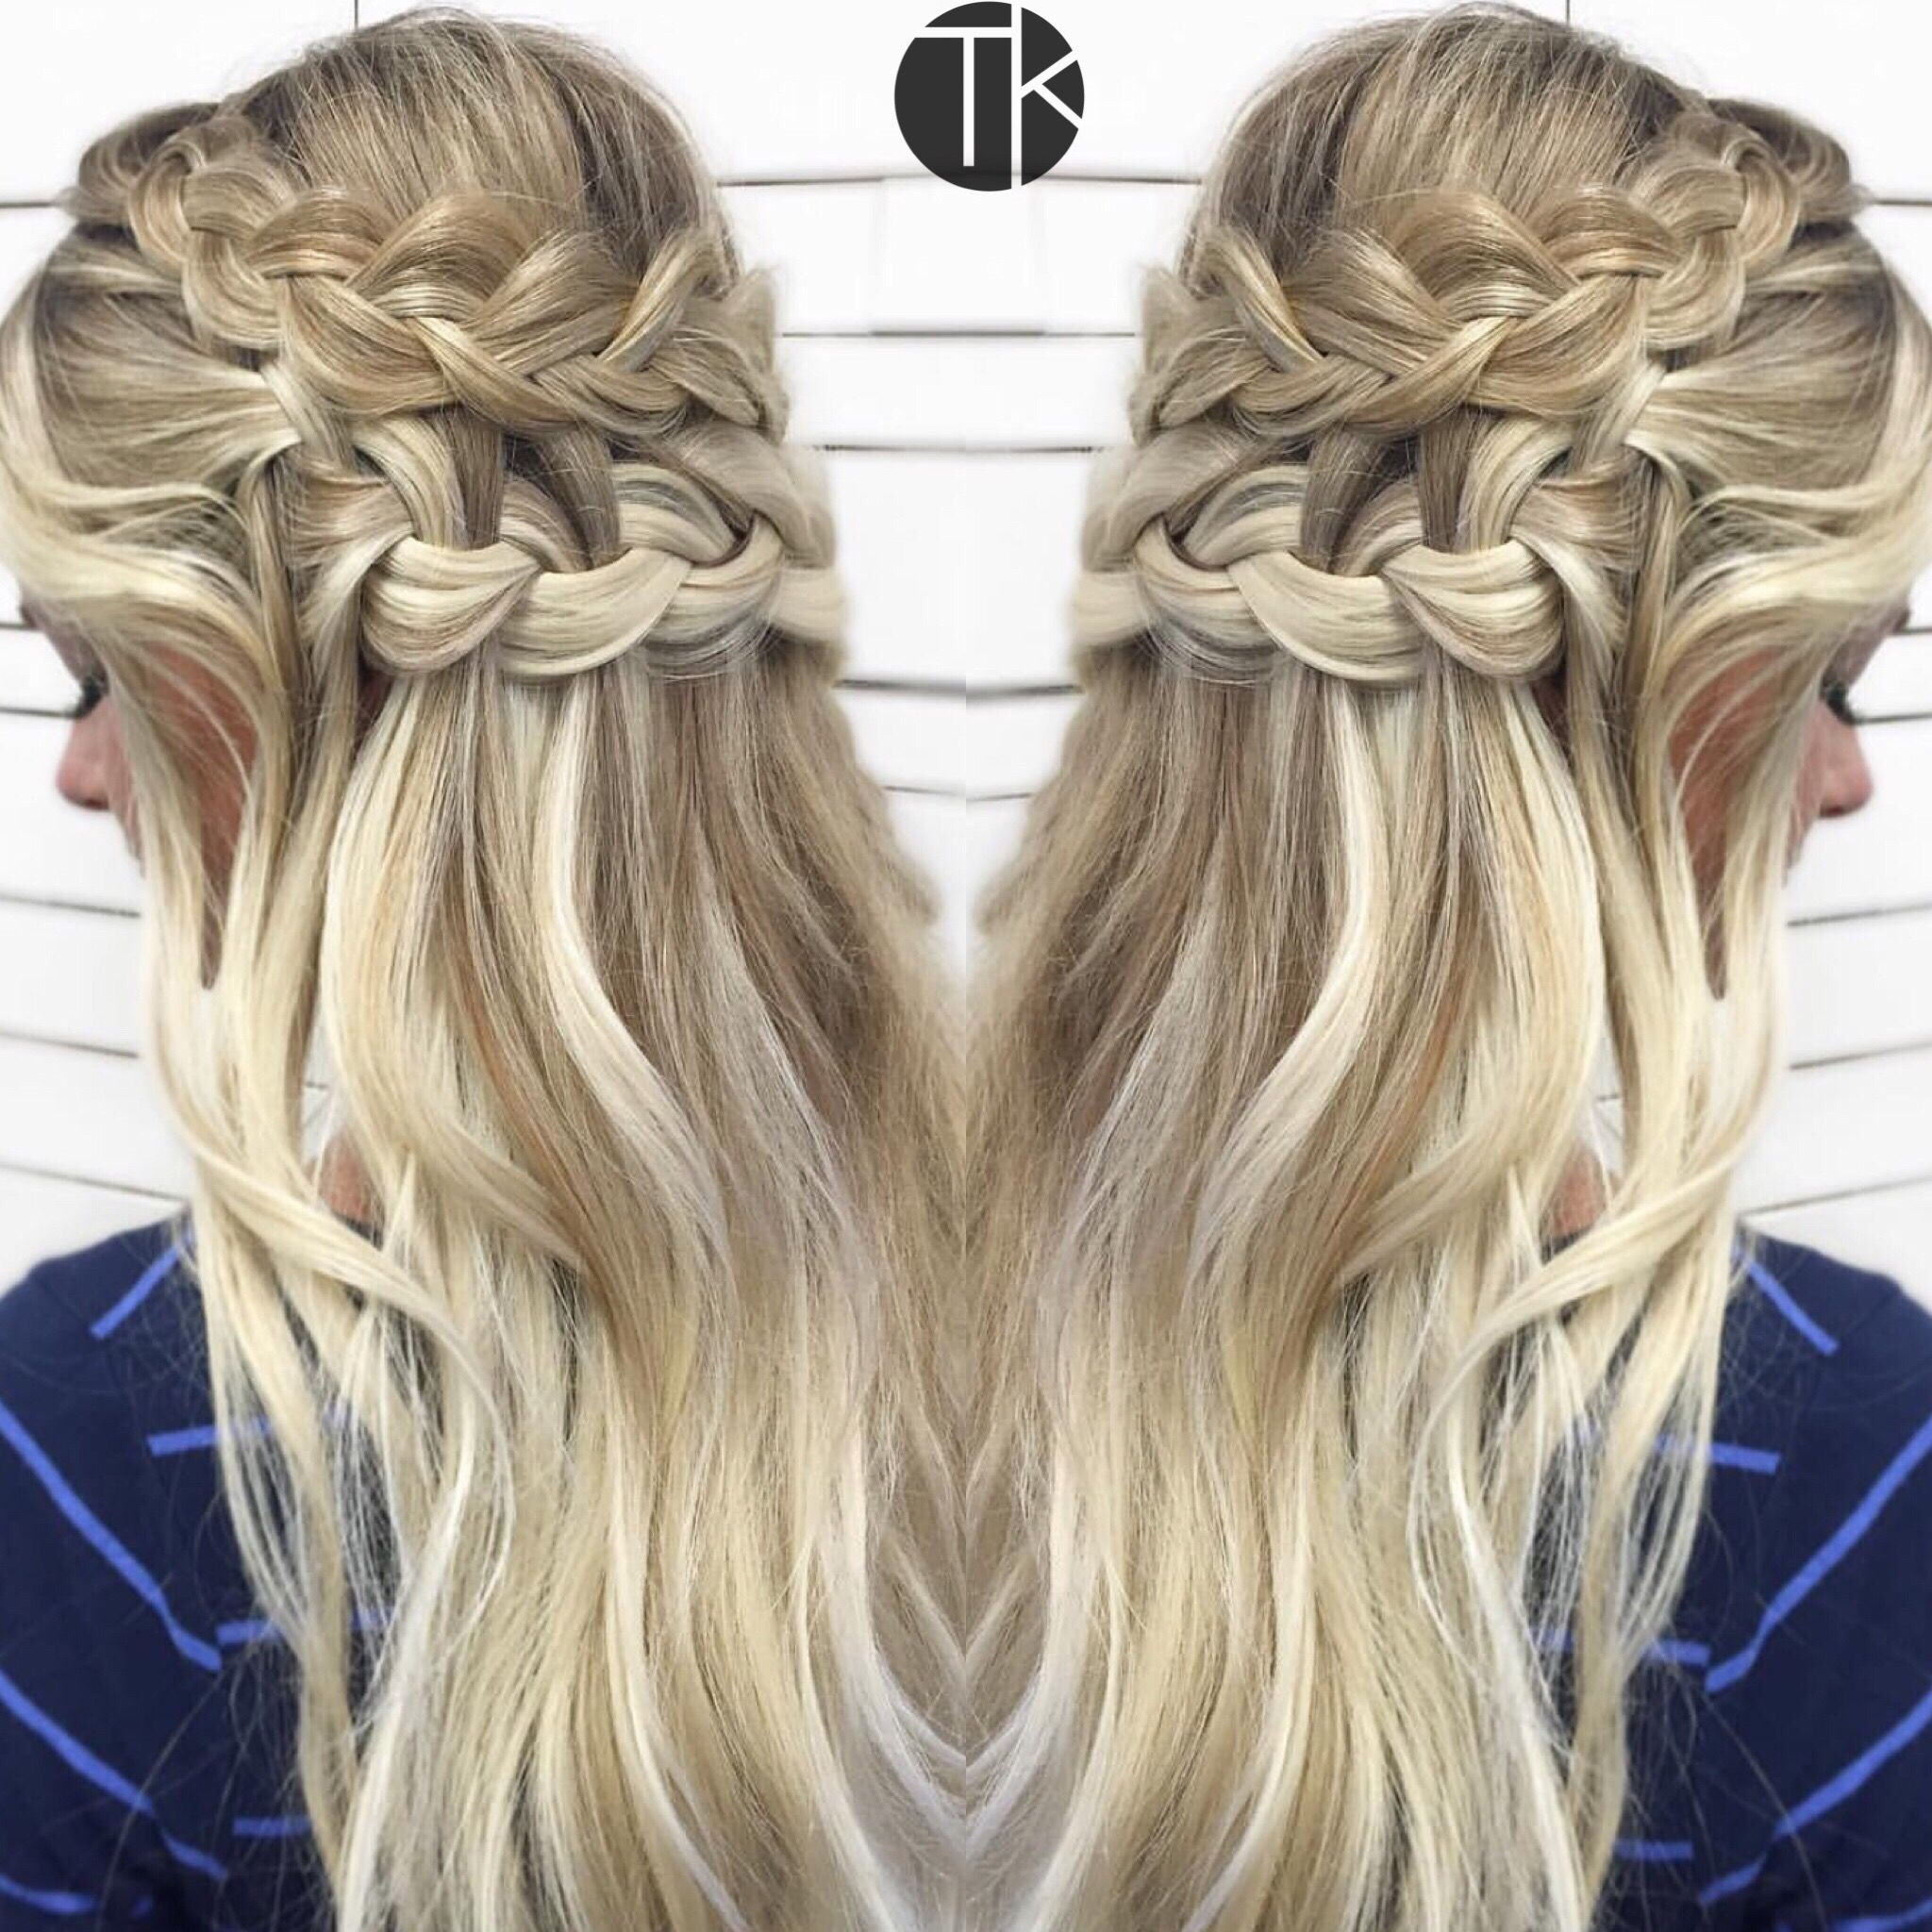 47+ Top knot hairstyle long hair trends